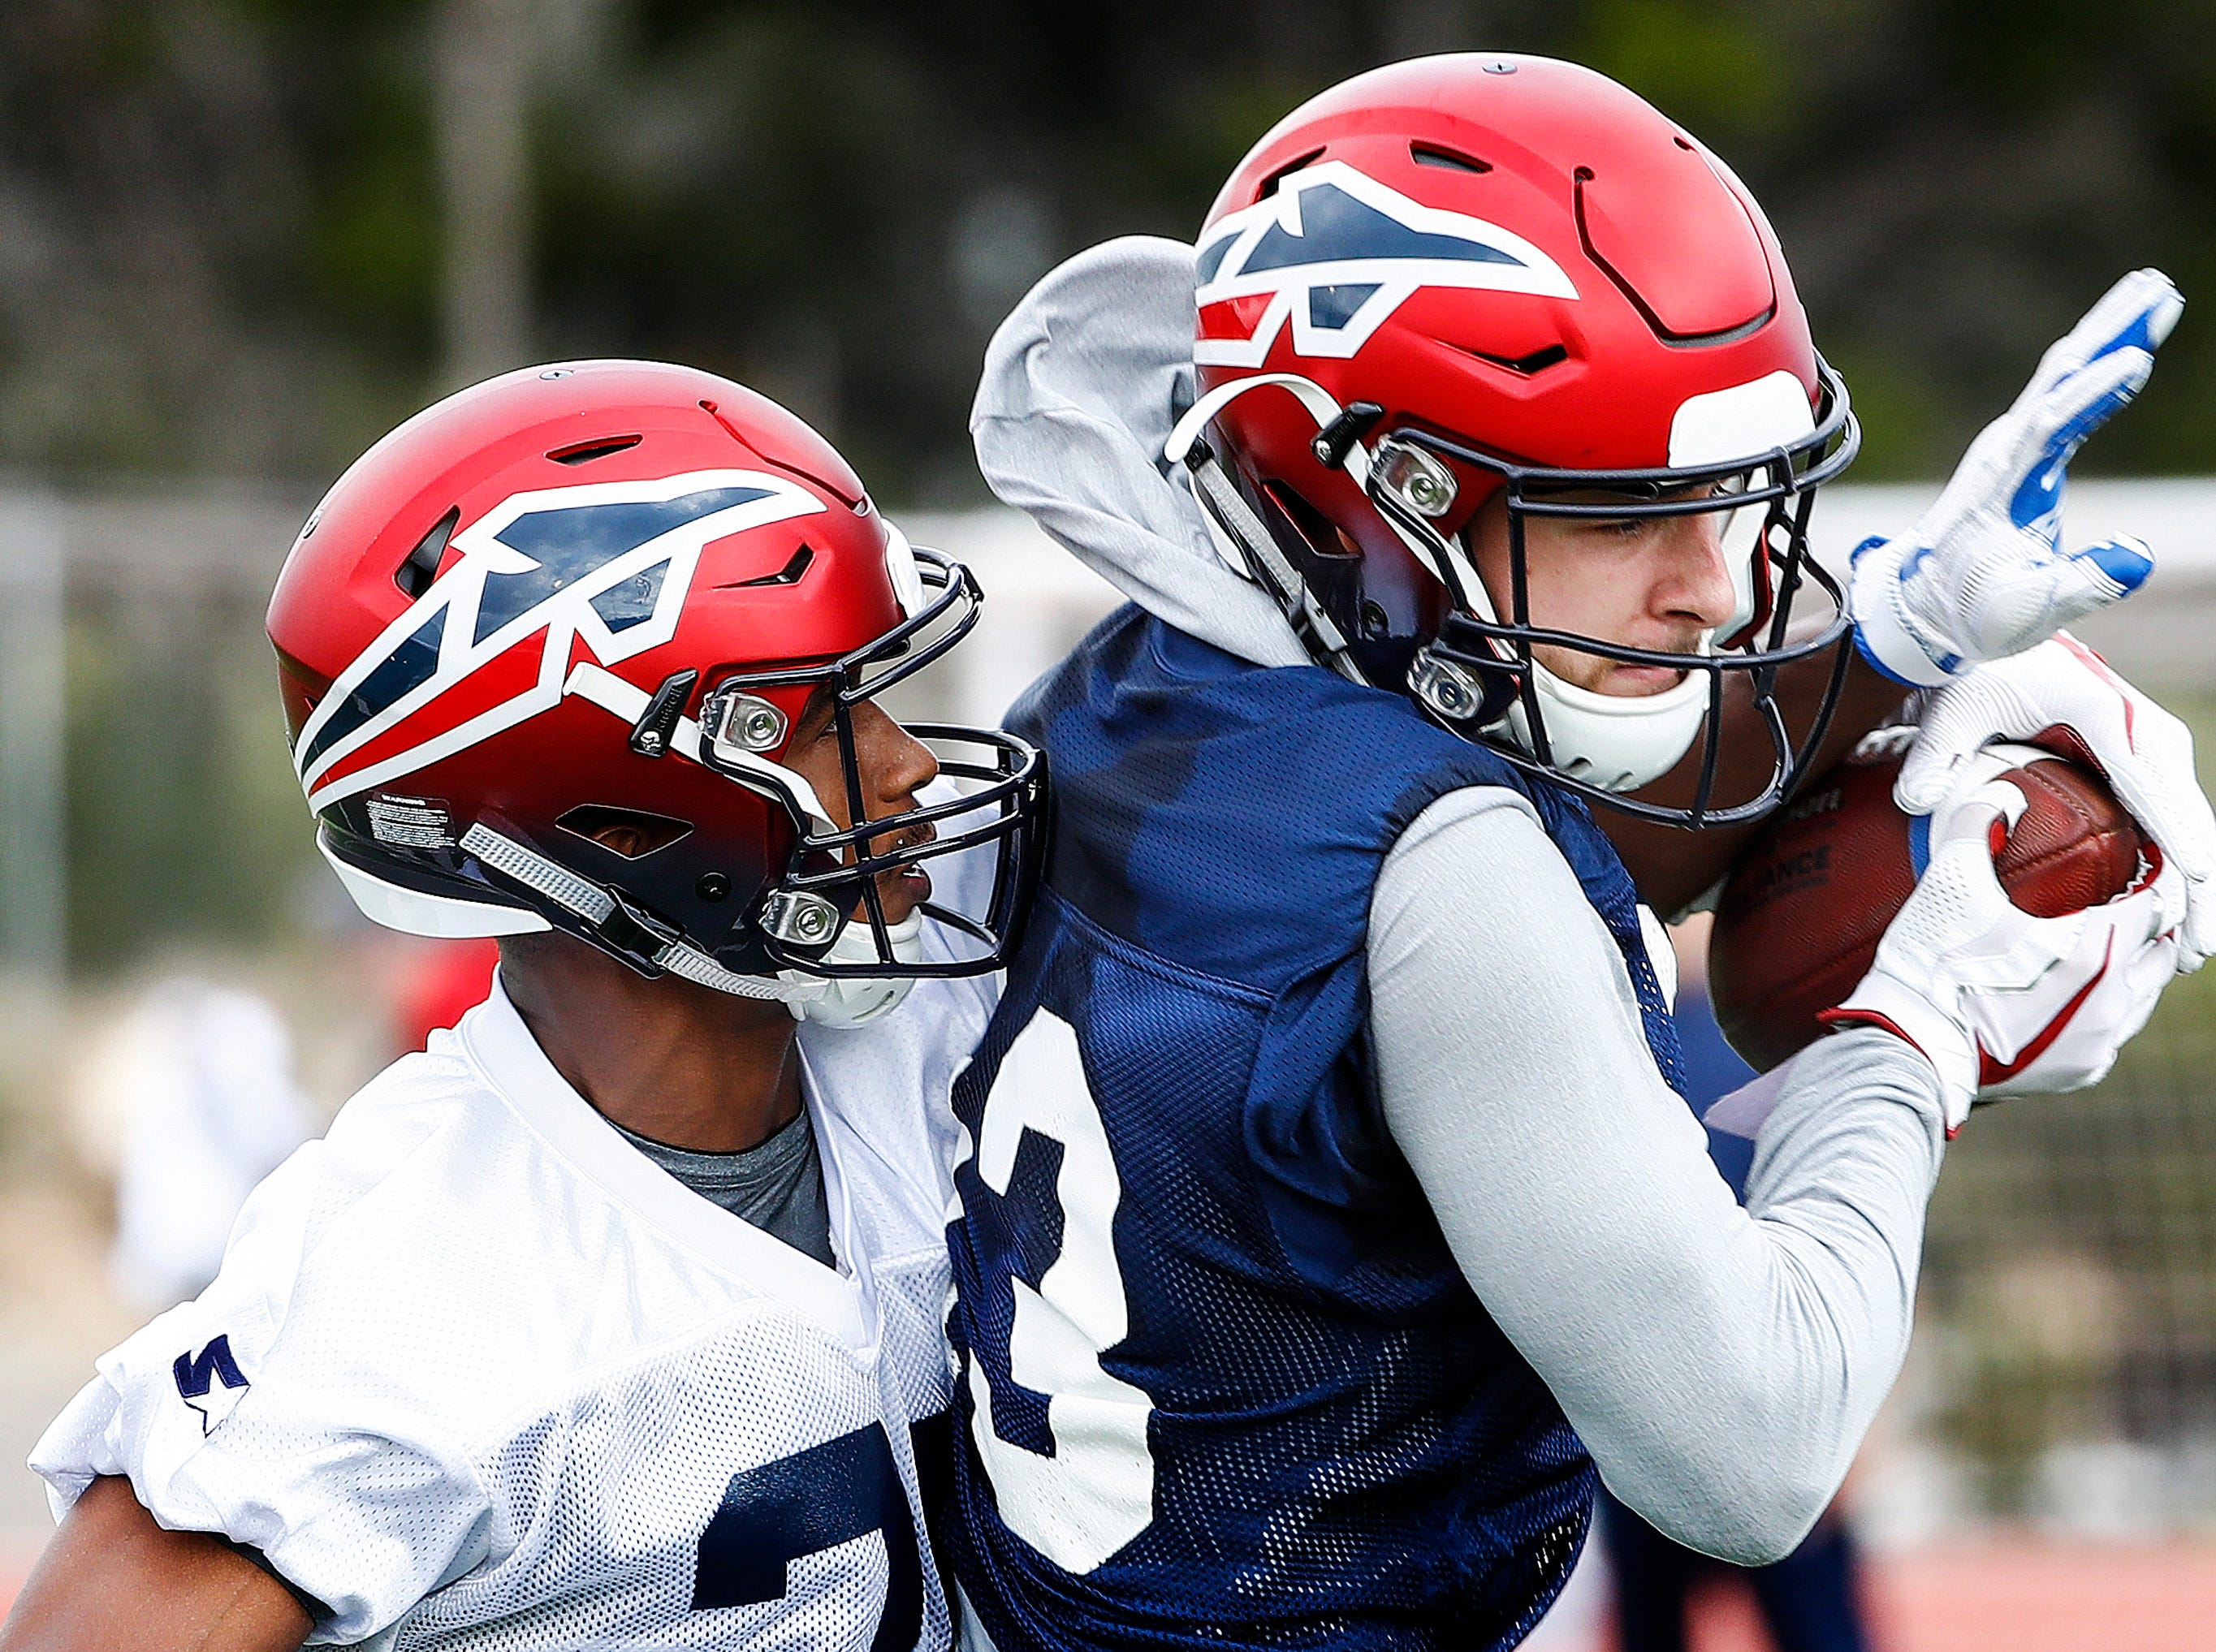 Memphis Express receiver Drew Morgan (right) makes catch in front of defender Jonathan Cook (left) during training camp in San Antonio, Texas.